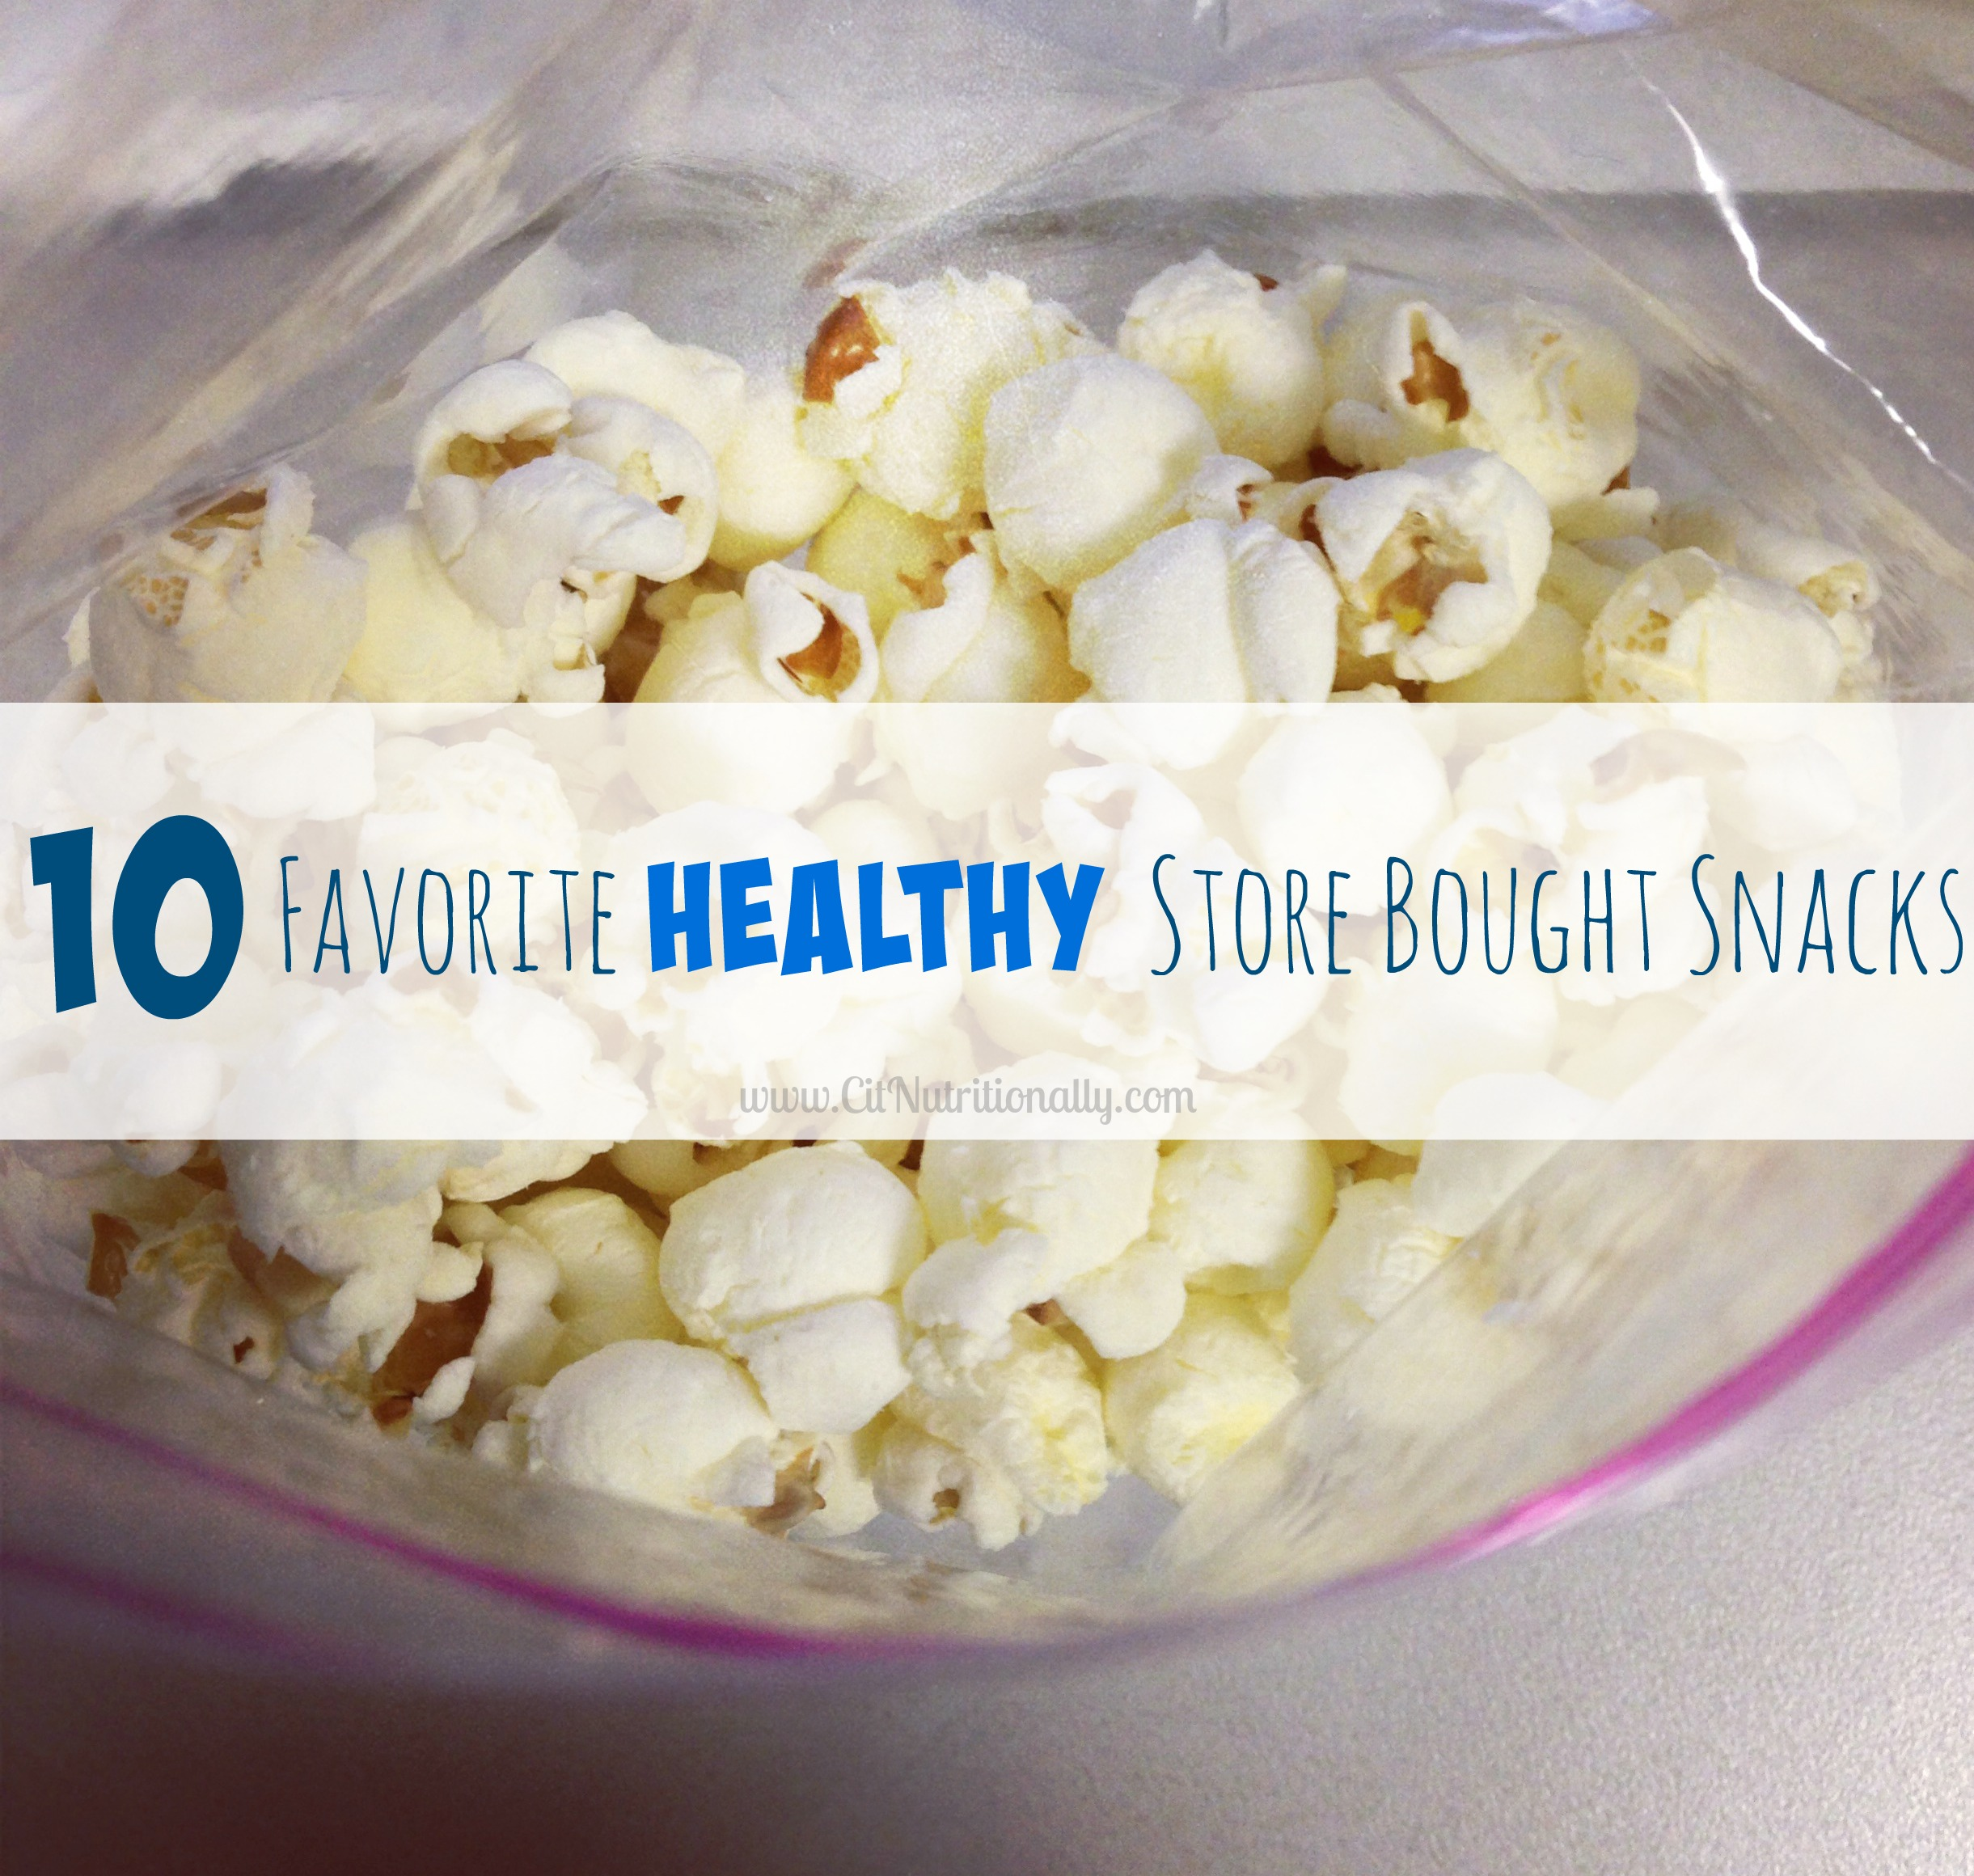 10 Favorite Healthy Store Bought Snacks | C it Nutritionally